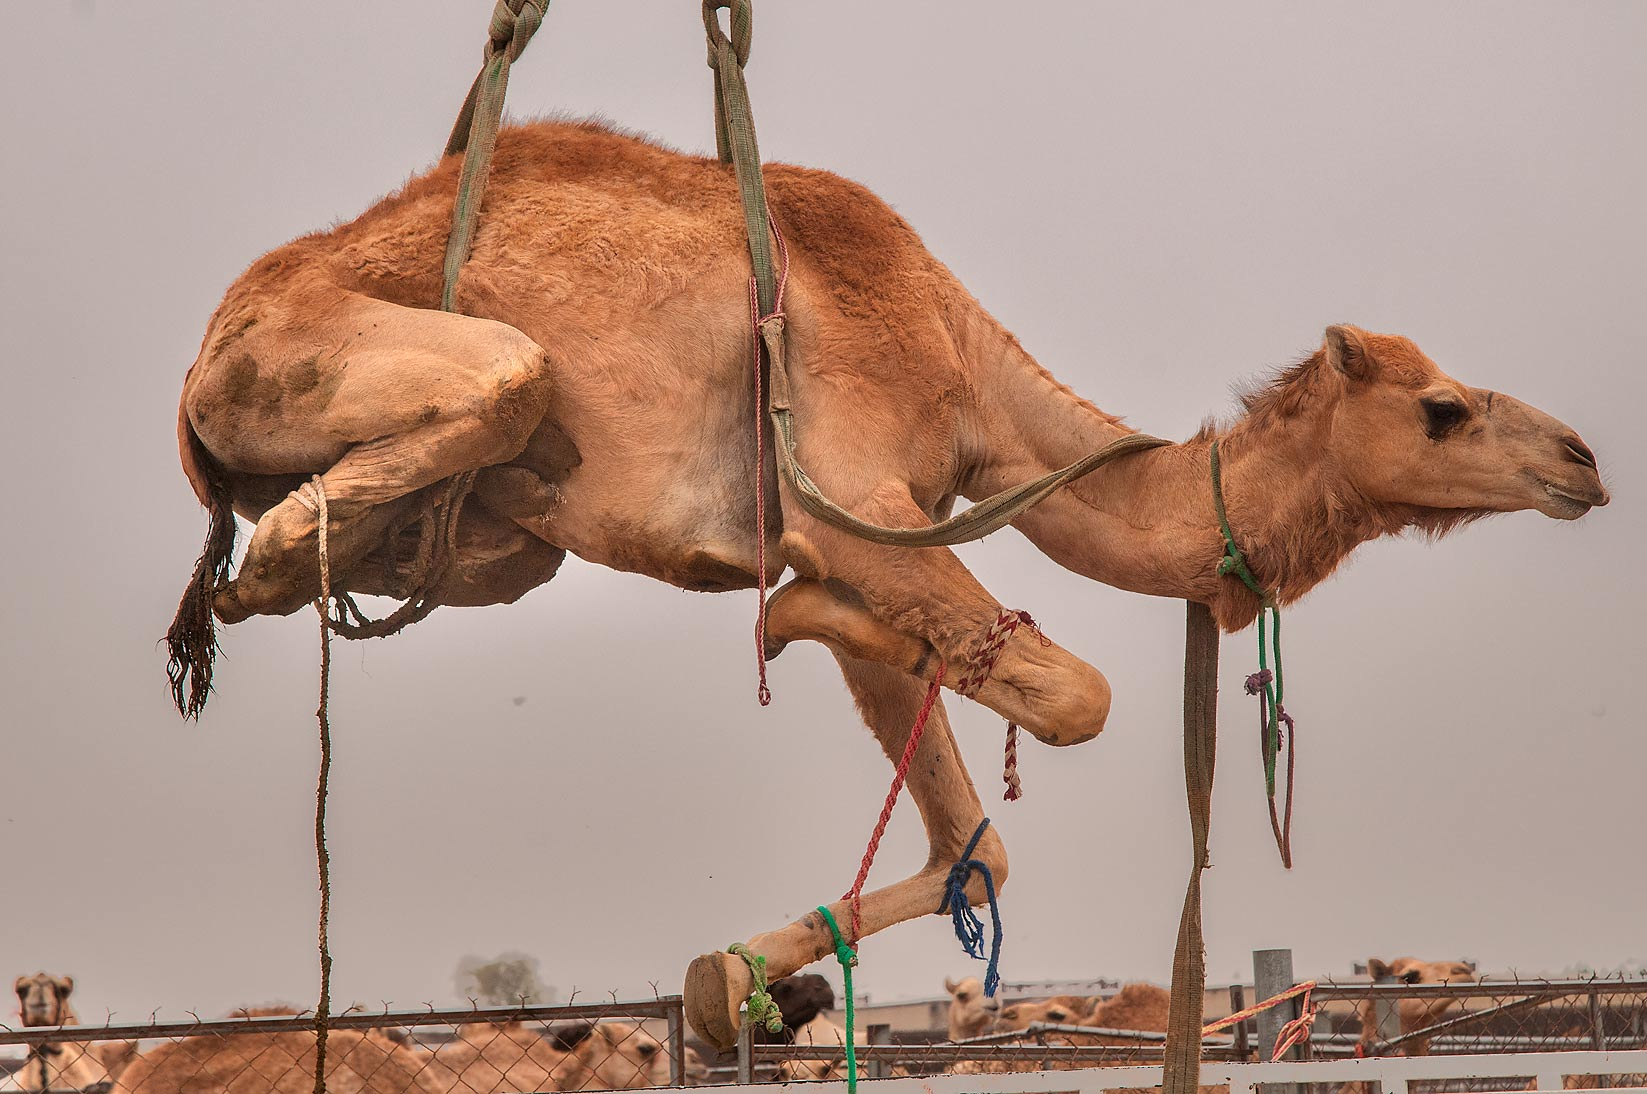 Camel suspended by hydraulic crane in livestock market, Abu Hamour area. Doha, Qatar